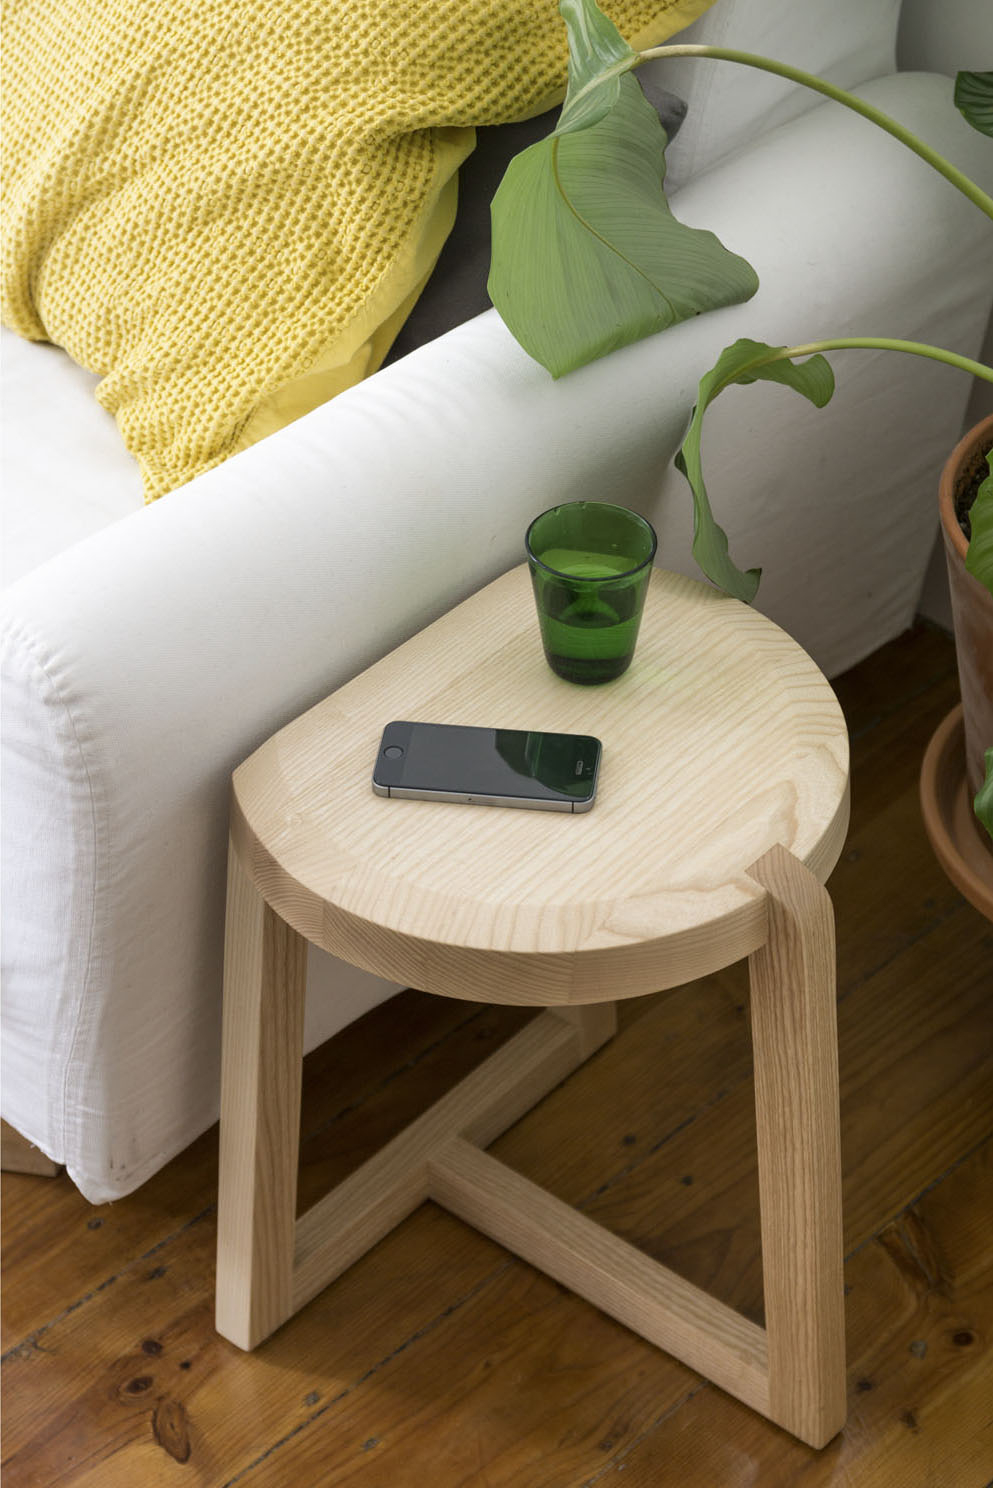 Oyster Stool from UTIL